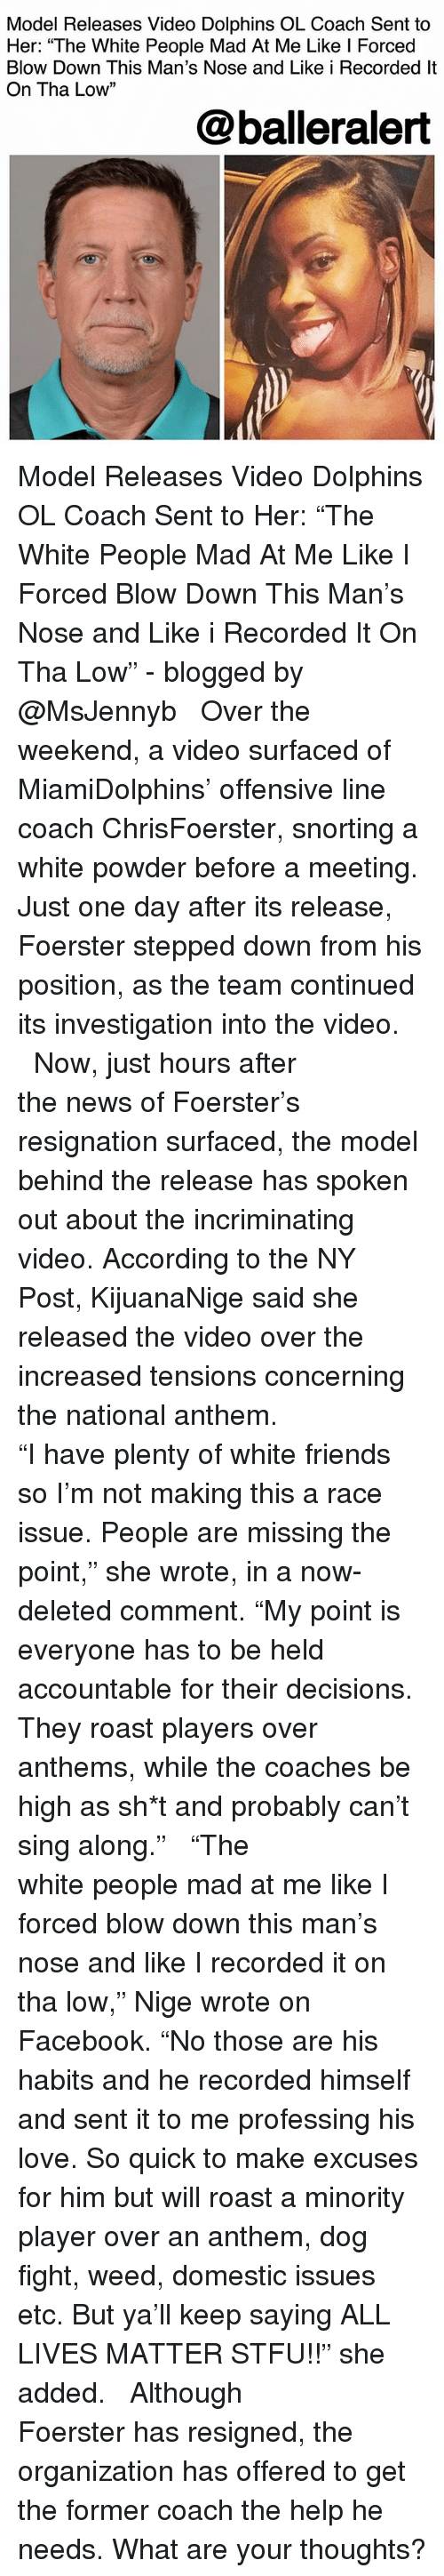 """All Lives Matter: Model Releases Video Dolphins OL Coach Sent to  Her: """"The White People Mad At Me Like l Forced  Blow Down This Man's Nose and Like i Recorded lt  On Tha Low""""  13  @balleralert Model Releases Video Dolphins OL Coach Sent to Her: """"The White People Mad At Me Like I Forced Blow Down This Man's Nose and Like i Recorded It On Tha Low"""" - blogged by @MsJennyb ⠀⠀⠀⠀⠀⠀⠀ ⠀⠀⠀⠀⠀⠀⠀ Over the weekend, a video surfaced of MiamiDolphins' offensive line coach ChrisFoerster, snorting a white powder before a meeting. Just one day after its release, Foerster stepped down from his position, as the team continued its investigation into the video. ⠀⠀⠀⠀⠀⠀⠀ ⠀⠀⠀⠀⠀⠀⠀ Now, just hours after the news of Foerster's resignation surfaced, the model behind the release has spoken out about the incriminating video. According to the NY Post, KijuanaNige said she released the video over the increased tensions concerning the national anthem. ⠀⠀⠀⠀⠀⠀⠀ ⠀⠀⠀⠀⠀⠀⠀ """"I have plenty of white friends so I'm not making this a race issue. People are missing the point,"""" she wrote, in a now-deleted comment. """"My point is everyone has to be held accountable for their decisions. They roast players over anthems, while the coaches be high as sh*t and probably can't sing along."""" ⠀⠀⠀⠀⠀⠀⠀ ⠀⠀⠀⠀⠀⠀⠀ """"The white people mad at me like I forced blow down this man's nose and like I recorded it on tha low,"""" Nige wrote on Facebook. """"No those are his habits and he recorded himself and sent it to me professing his love. So quick to make excuses for him but will roast a minority player over an anthem, dog fight, weed, domestic issues etc. But ya'll keep saying ALL LIVES MATTER STFU!!"""" she added. ⠀⠀⠀⠀⠀⠀⠀ ⠀⠀⠀⠀⠀⠀⠀ Although Foerster has resigned, the organization has offered to get the former coach the help he needs. What are your thoughts?"""